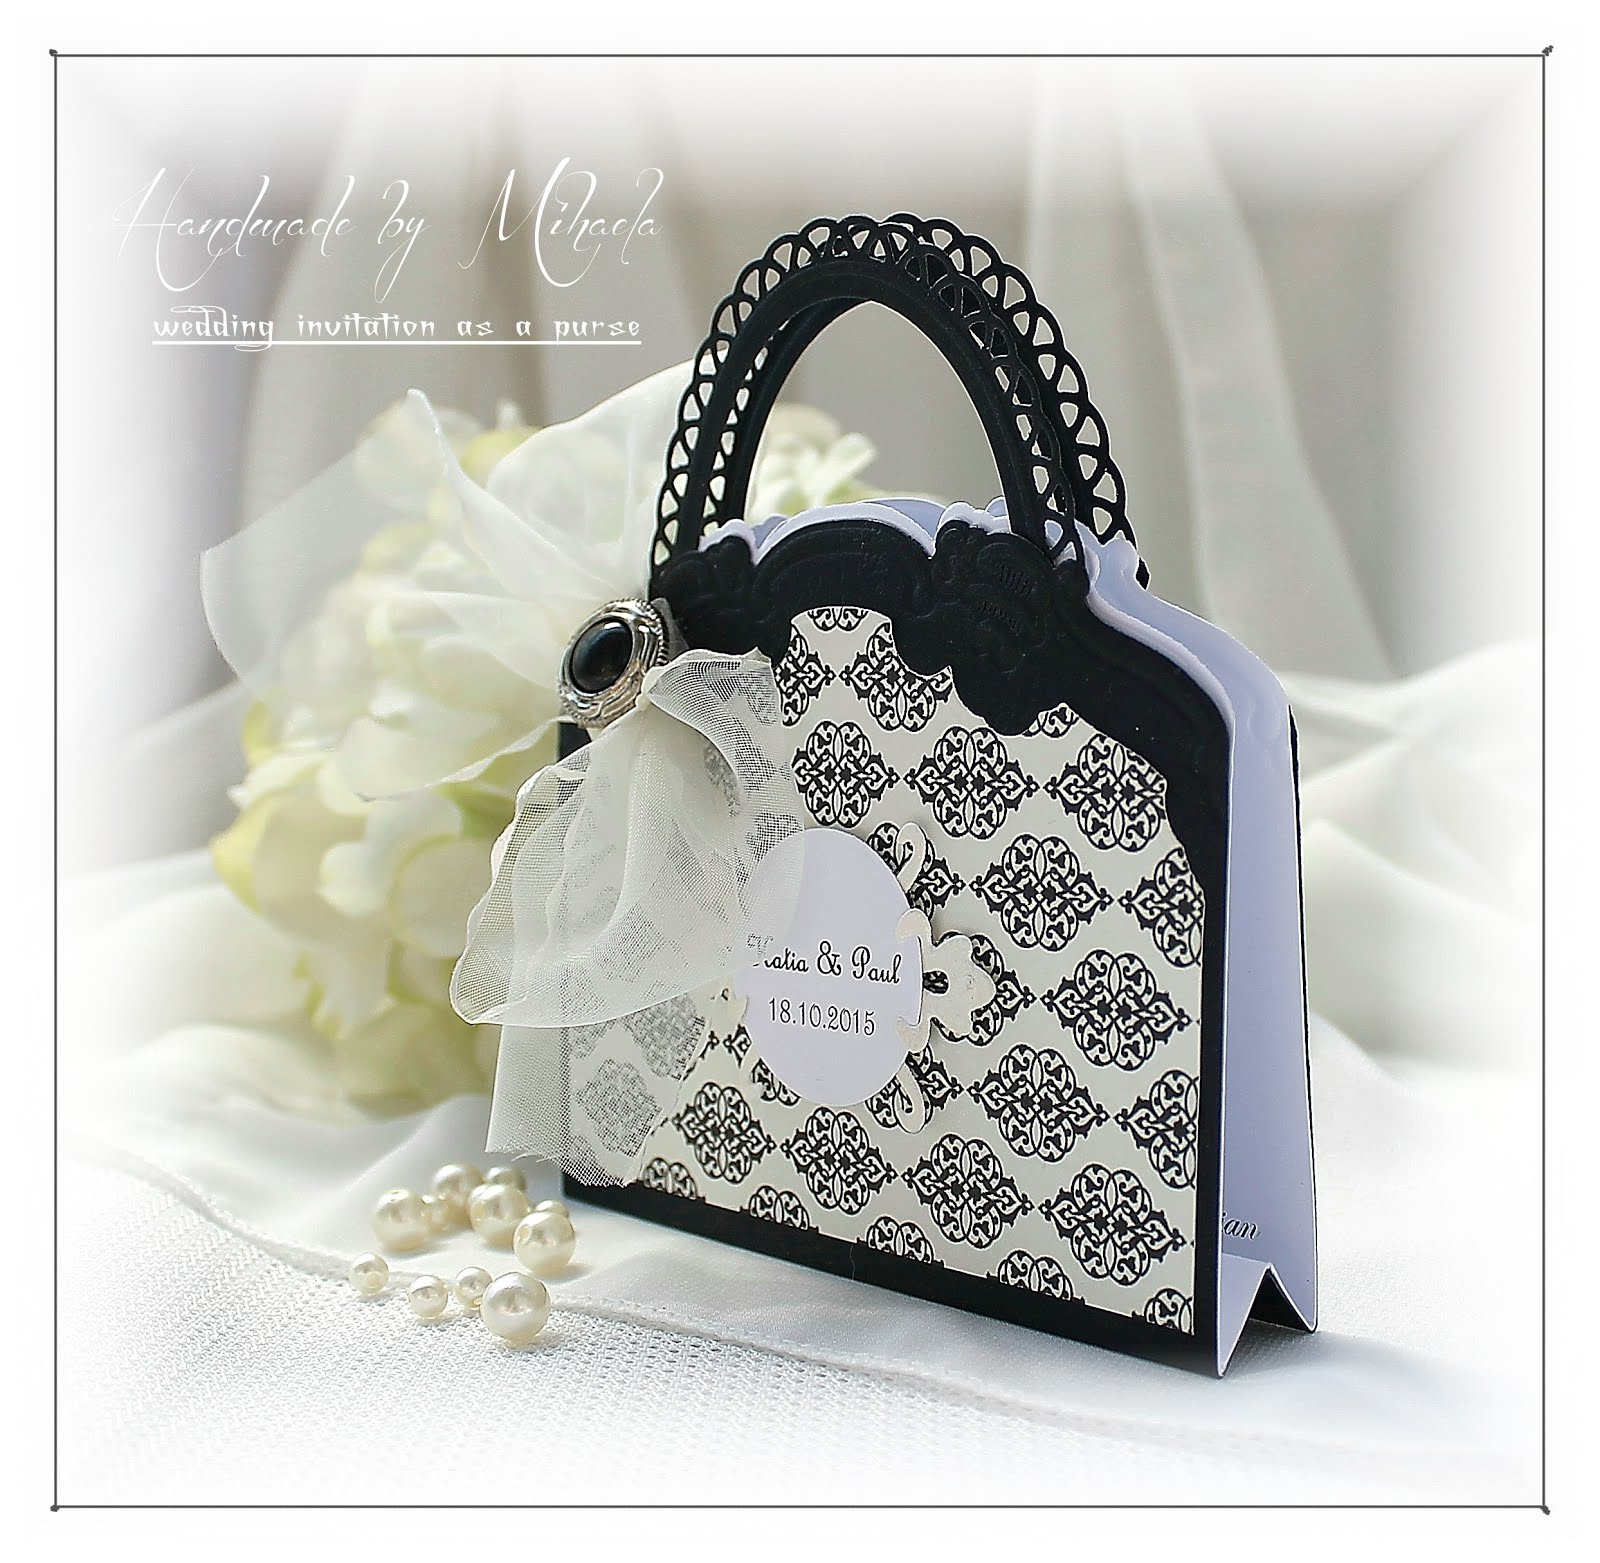 Wedding invitation as a purse